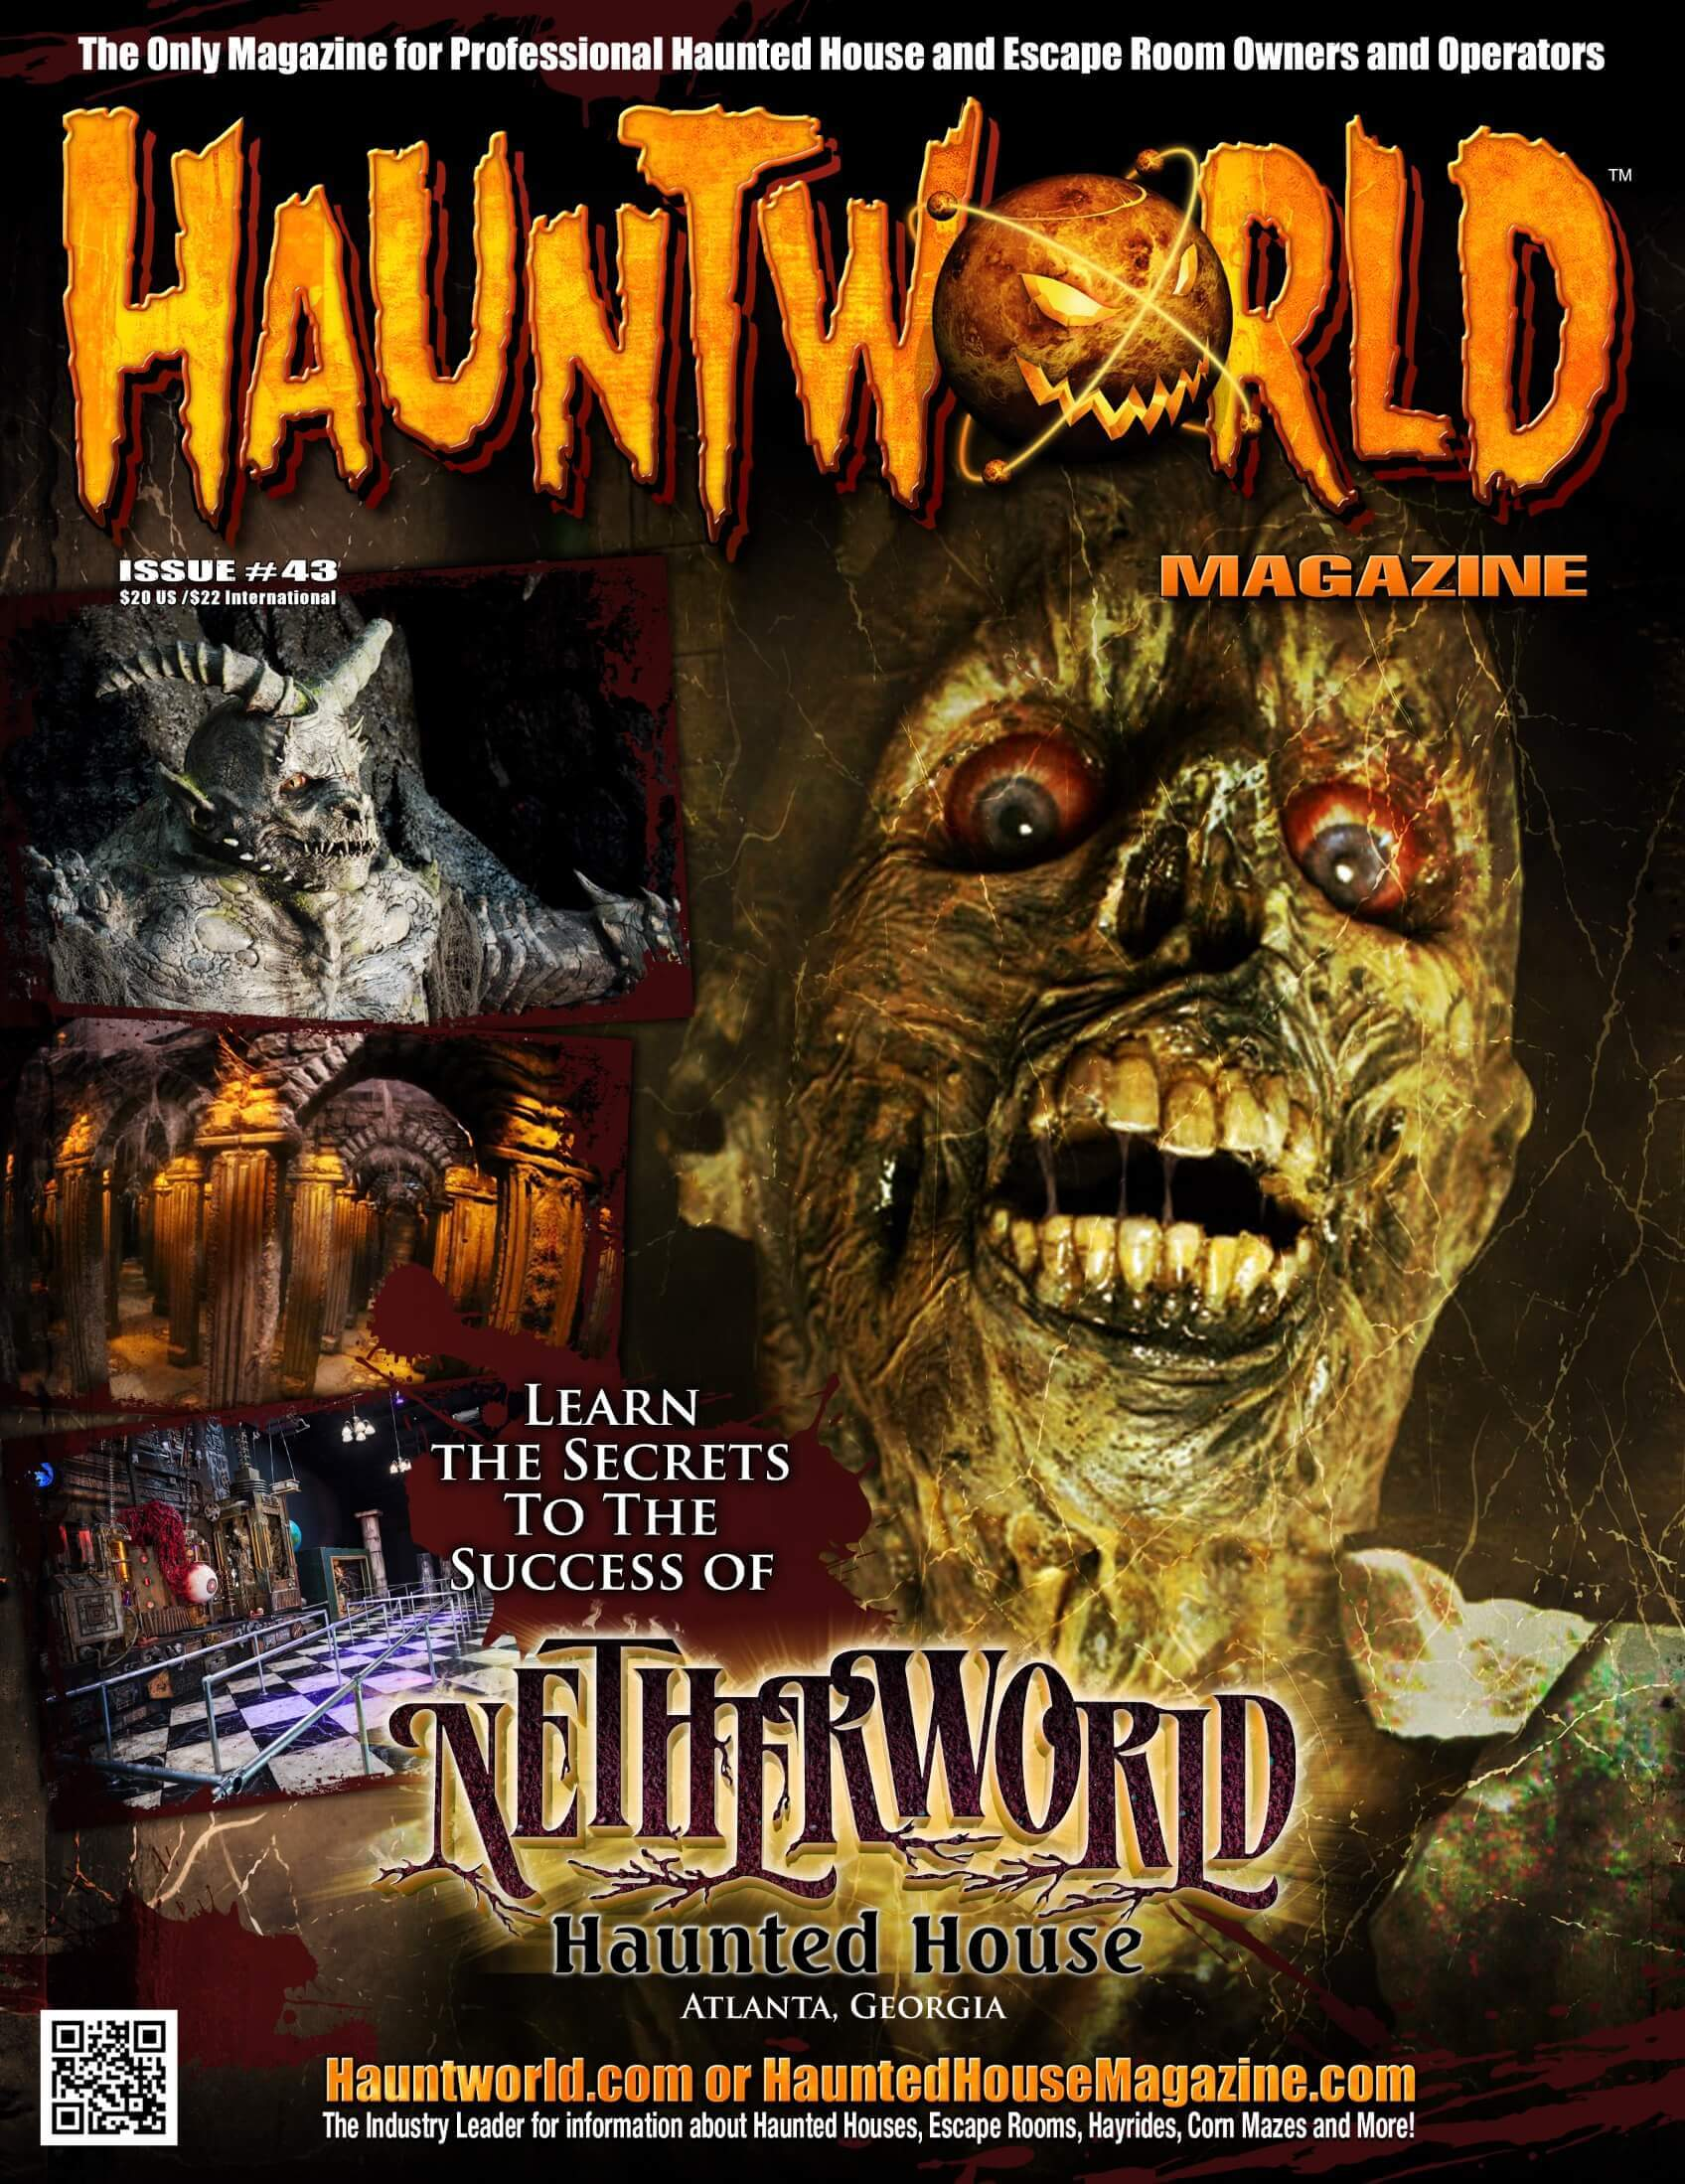 Hauntworld Magazine